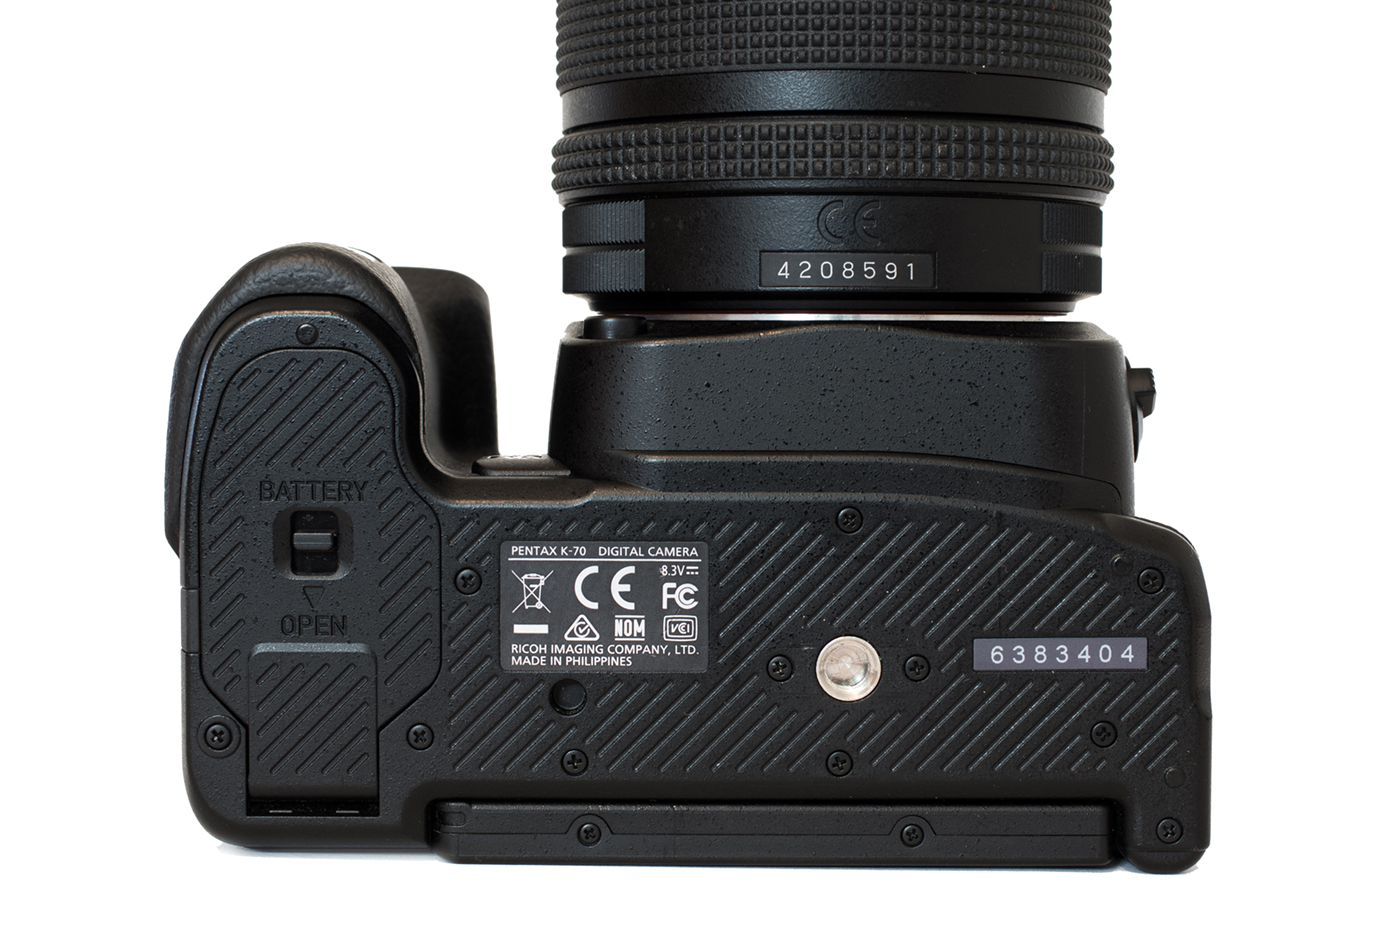 The bottom of the Pentax K-70